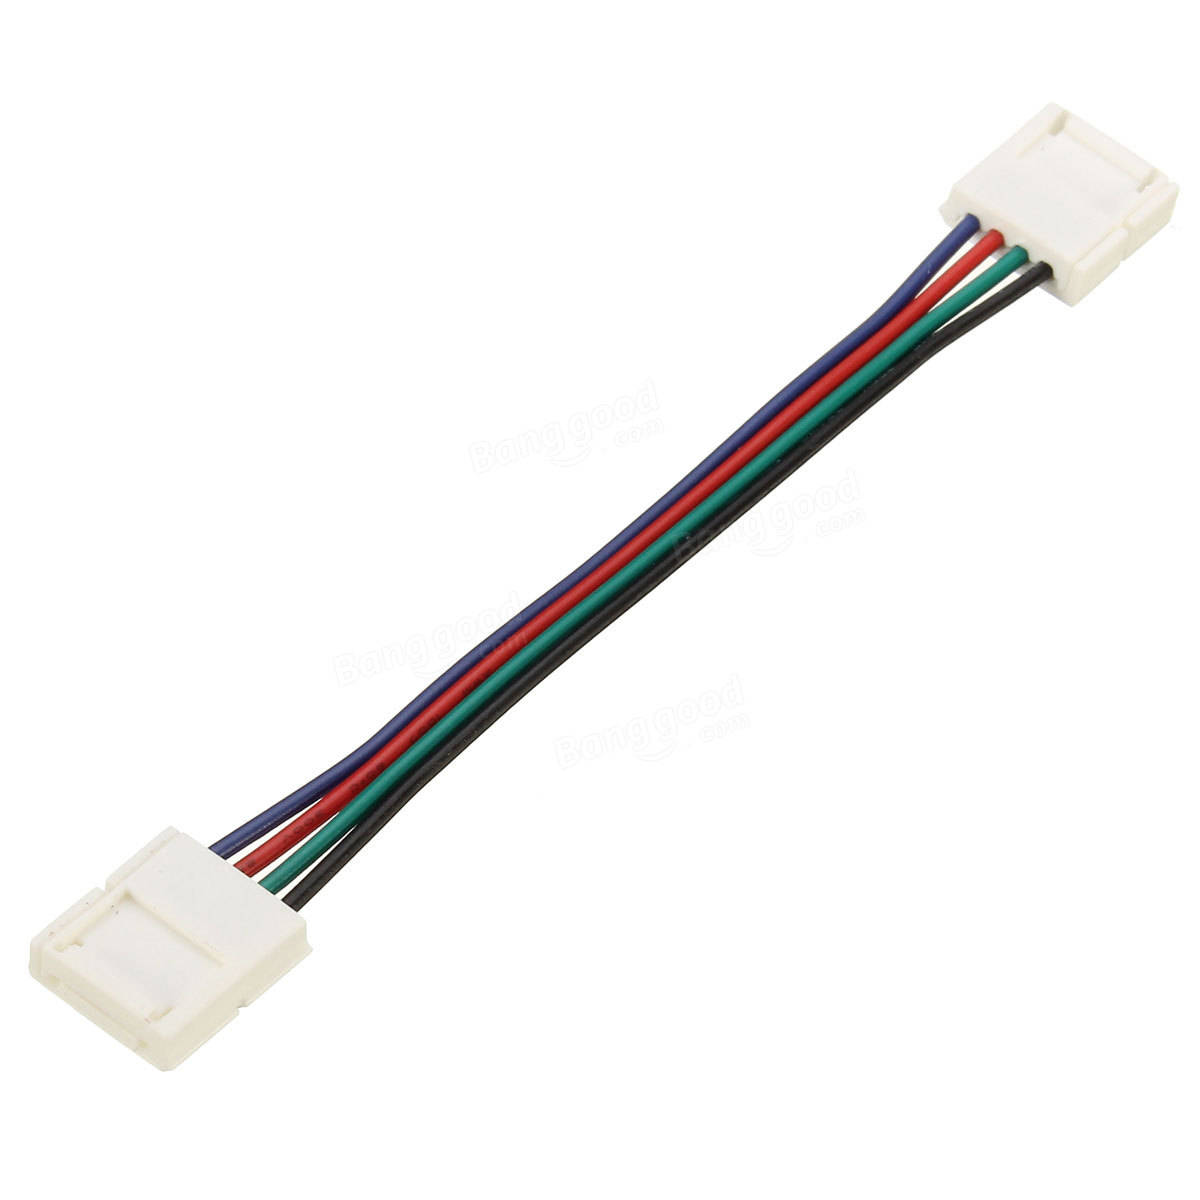 10 30 50 100cm 10mm 4 Pin Rgb Connector Cable Wire Wiring Extension Cord